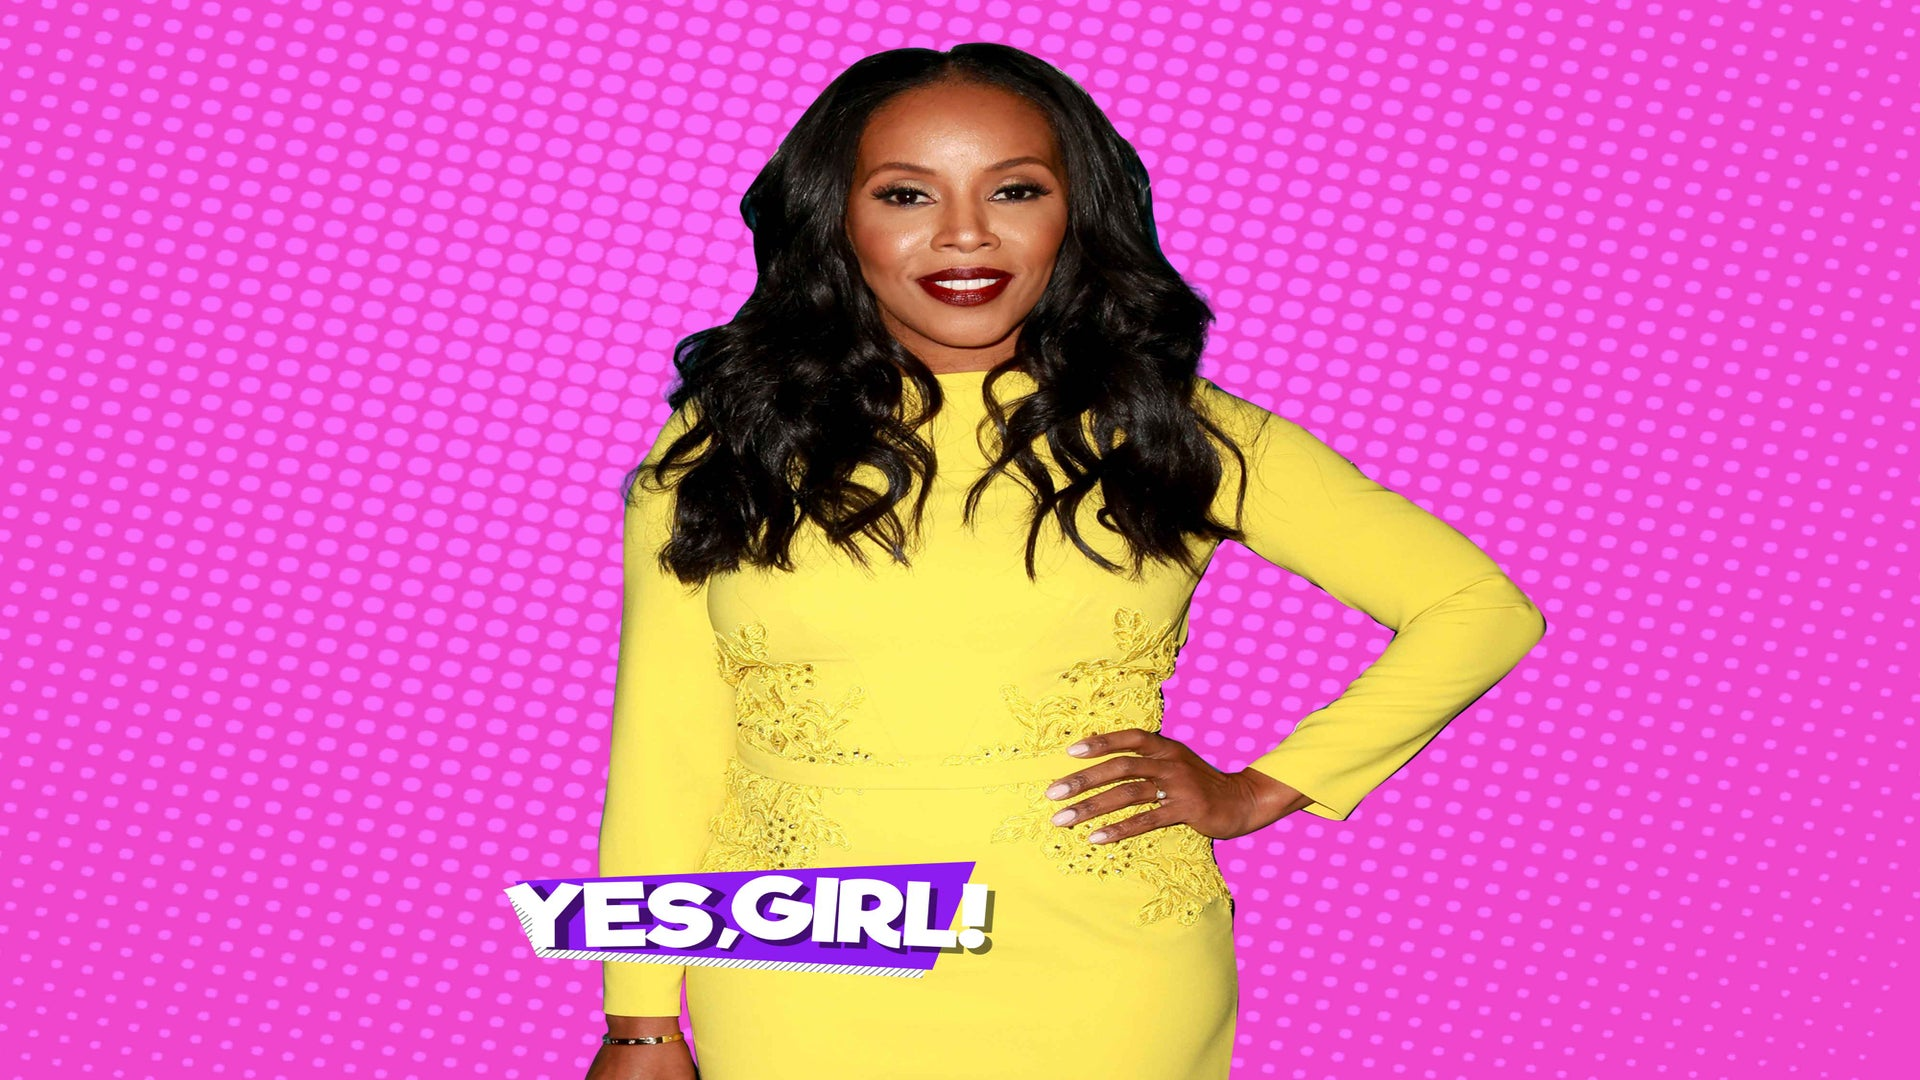 June Ambrose On Working With A Young Missy Elliot: 'She Wasn't Afraid' – Yes, Girl Podcast